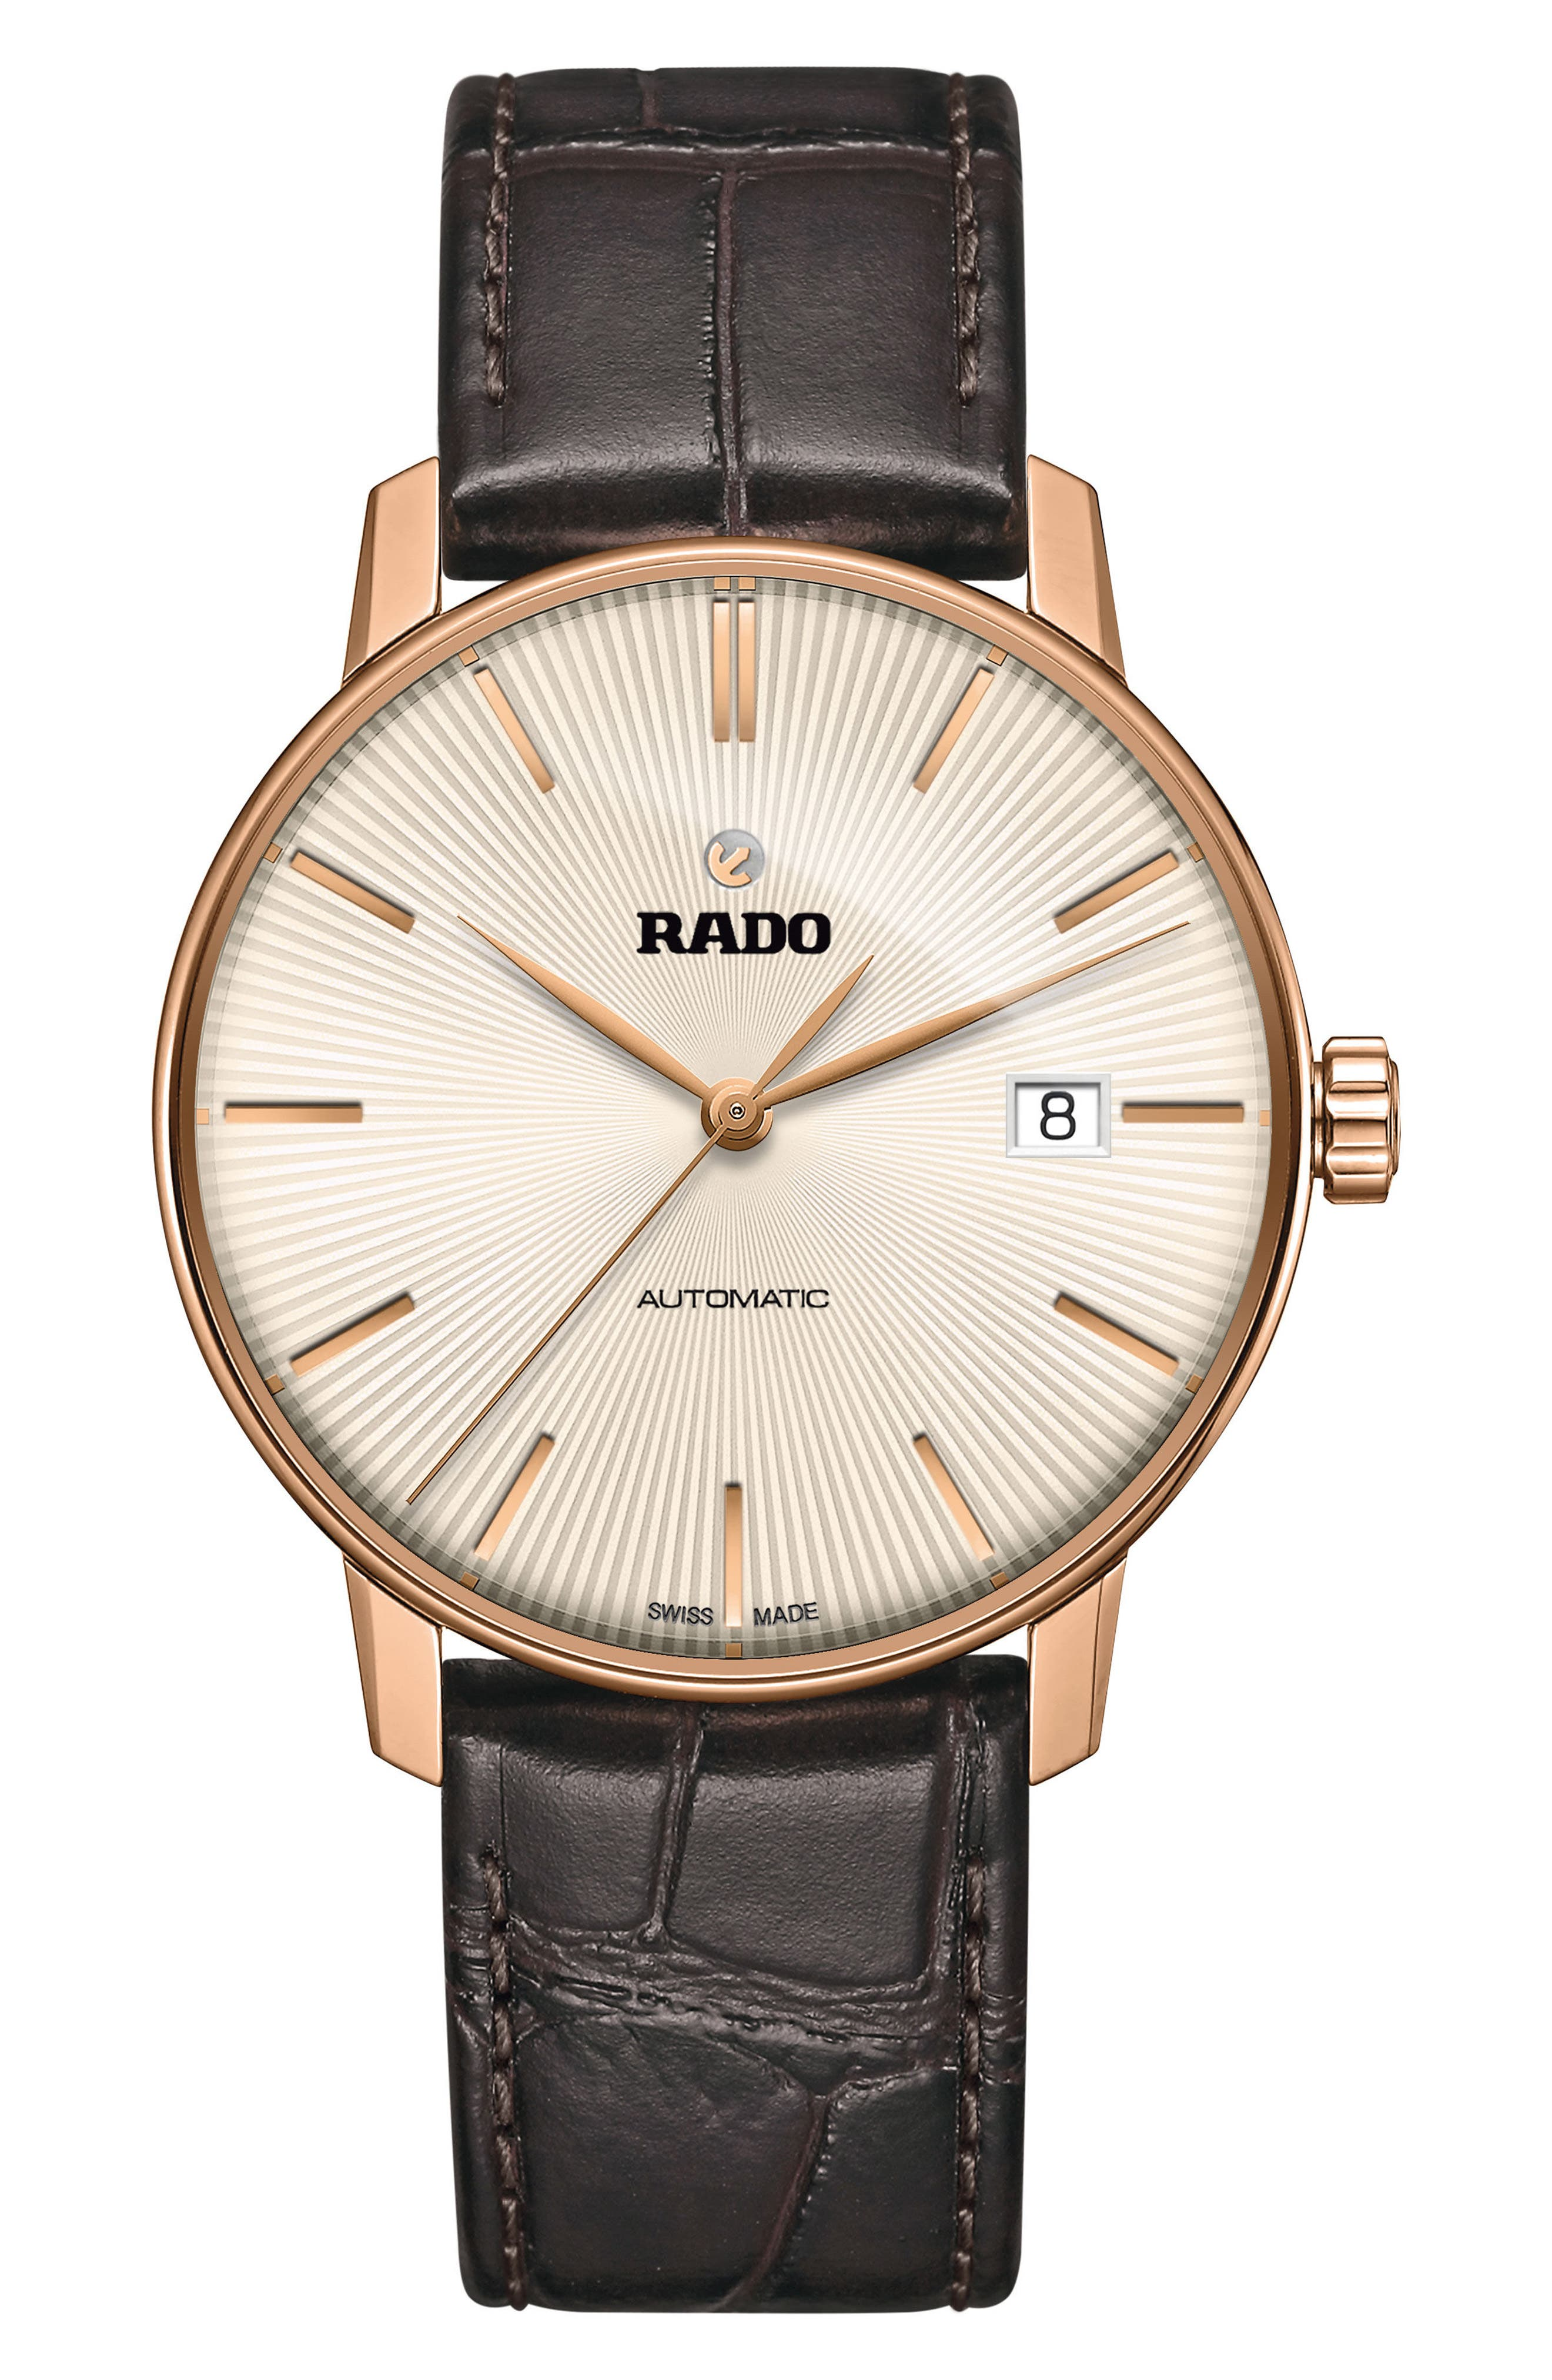 RADO, Coupole Classic Automatic Leather Strap Watch, 38mm, Main thumbnail 1, color, GREY/ BROWN/ GUNMETAL